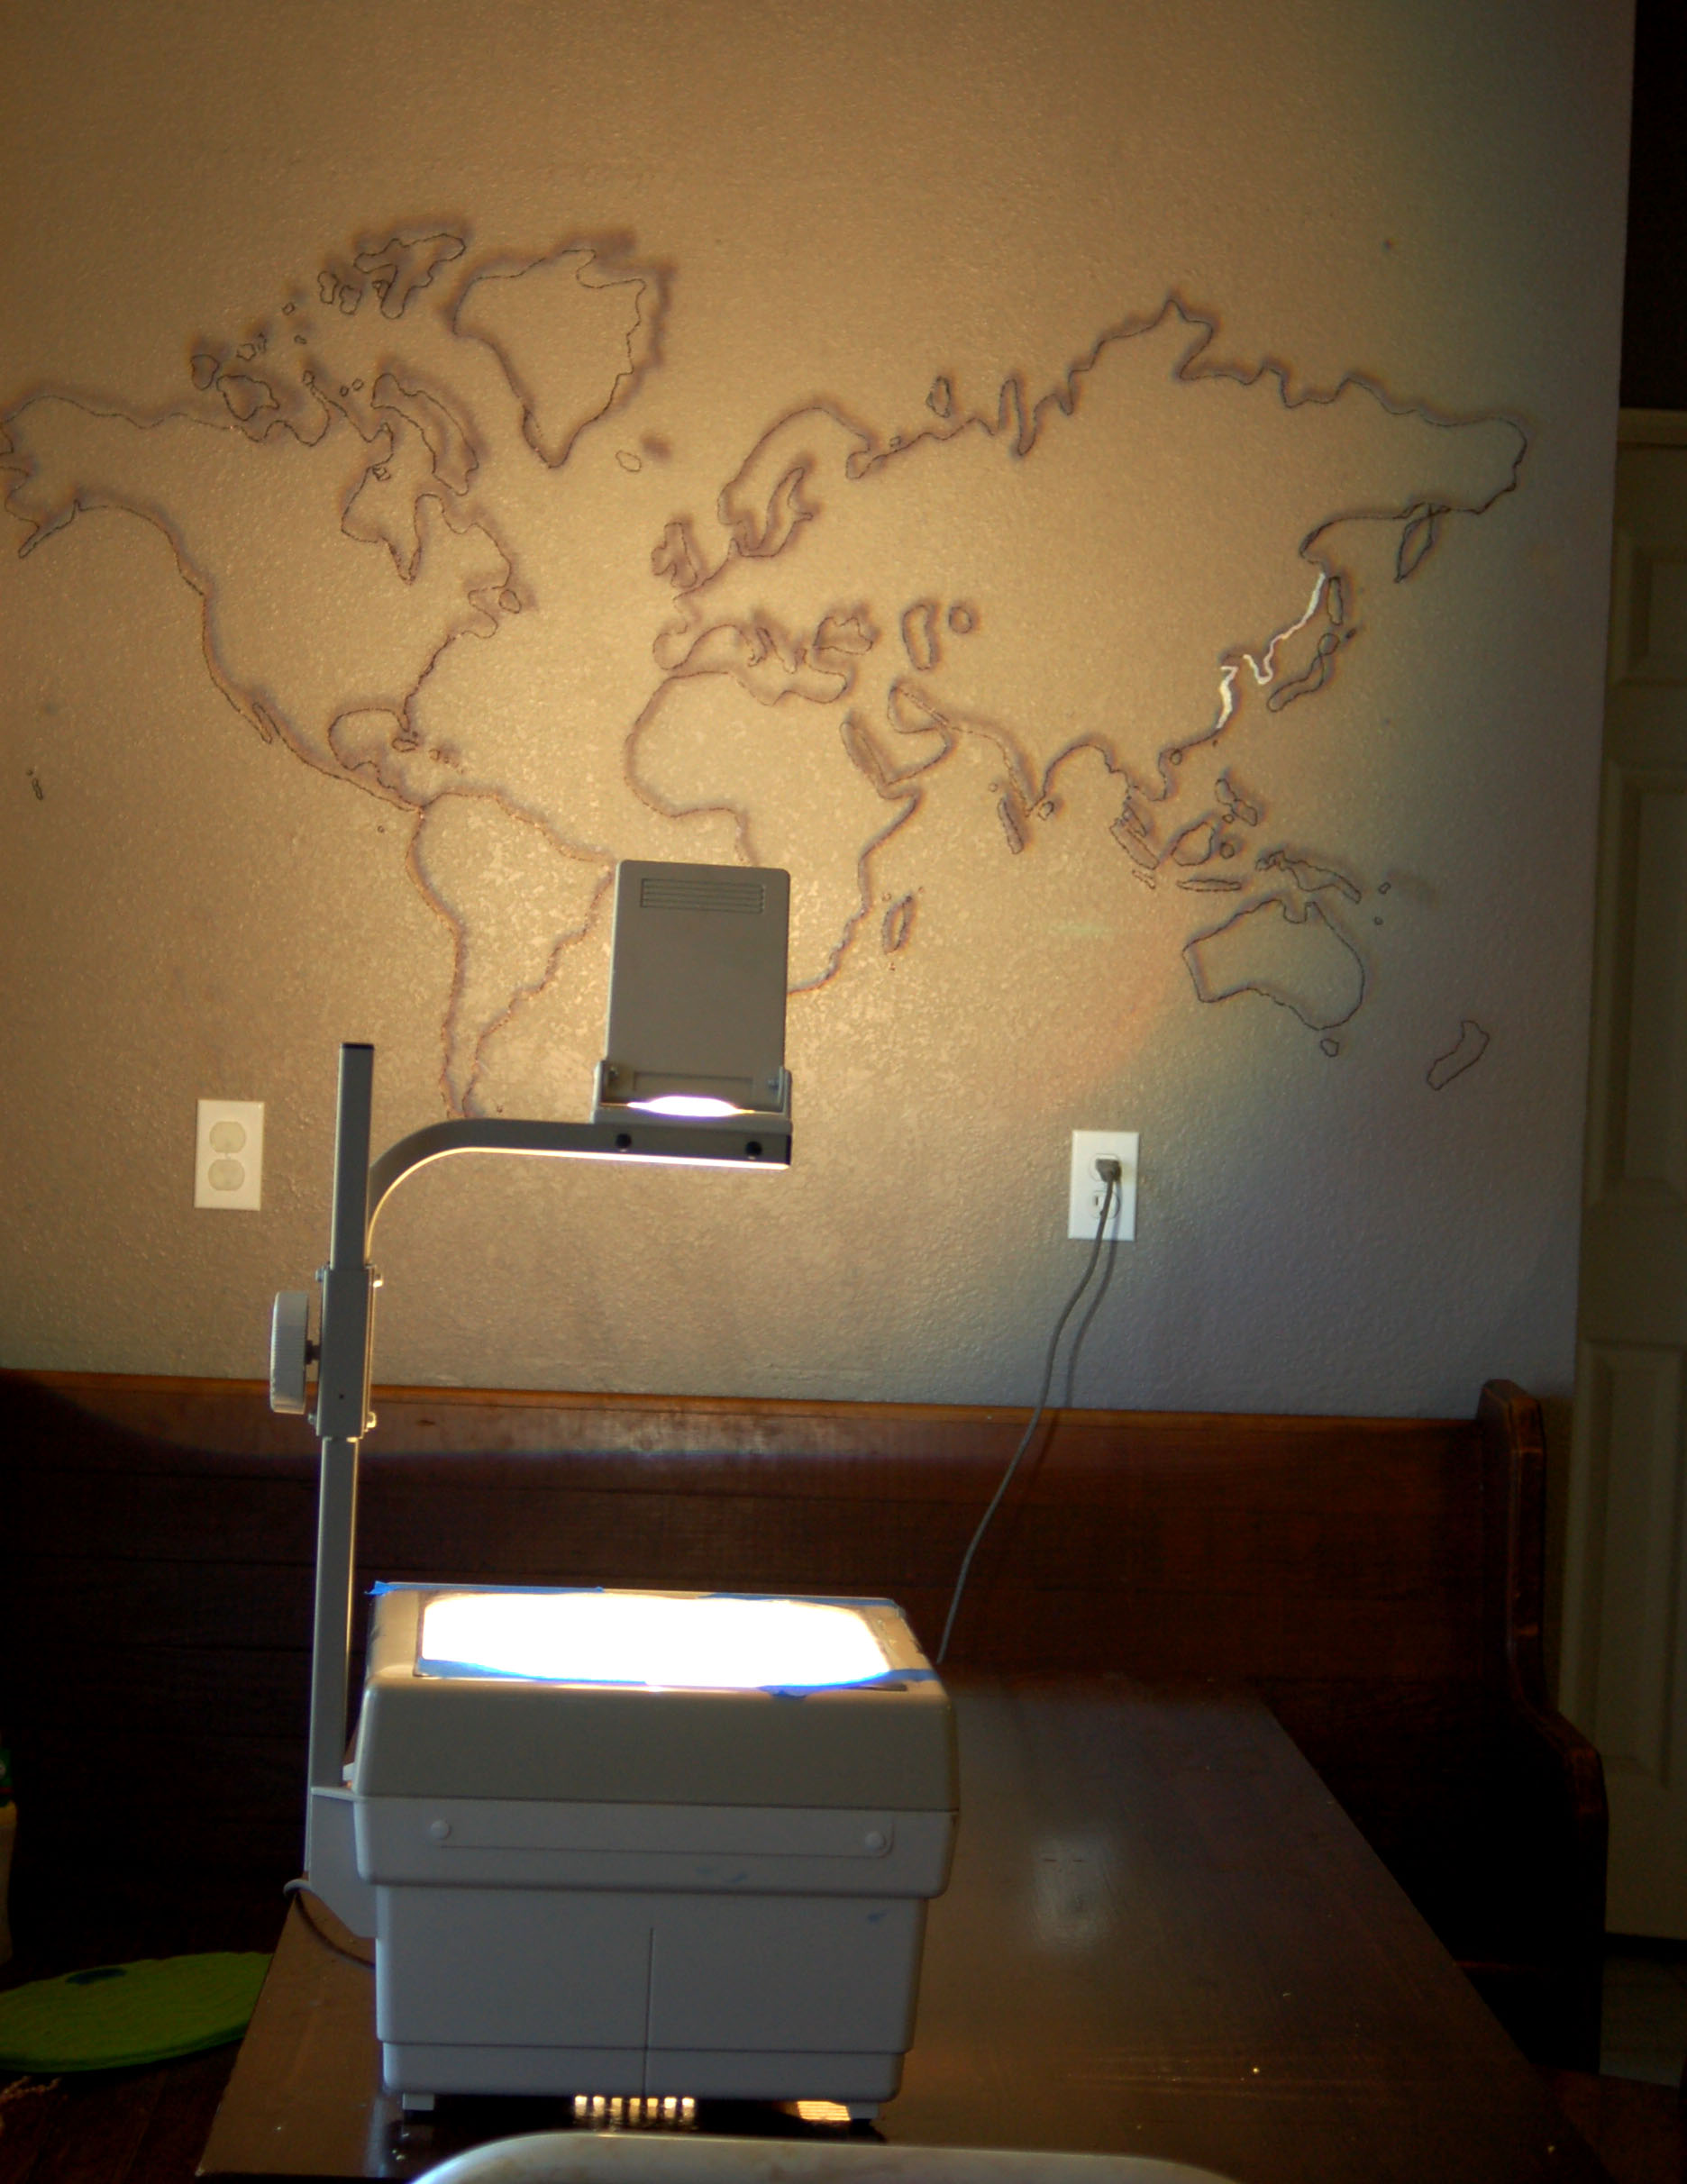 Diy world map mural for Best projector for mural painting